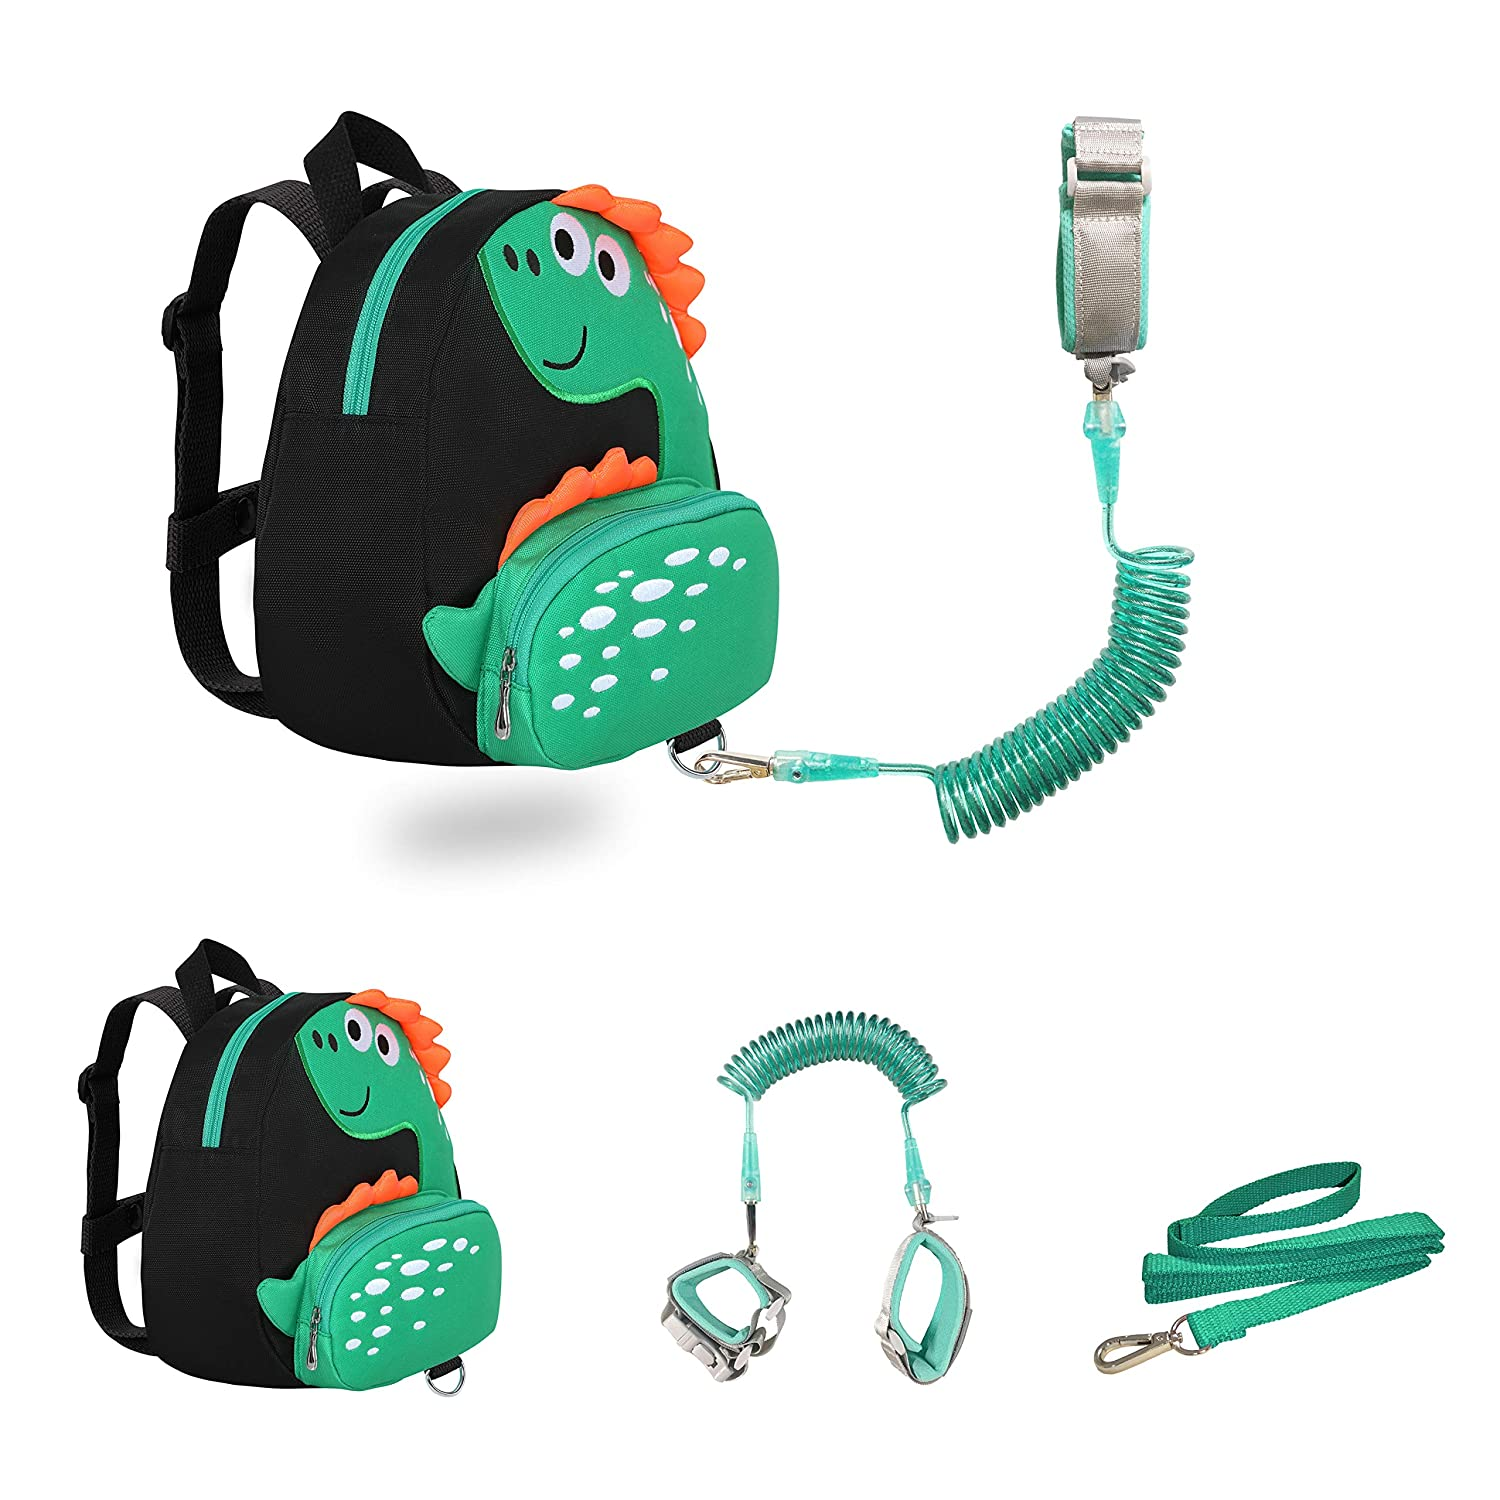 JIANBAO Dinosaur Toddler Backpacks with Leashes Anti Lost Wrist Link for 1.5 to 3 Years Kids Girls Boys Safety (Dinosaur, Black)